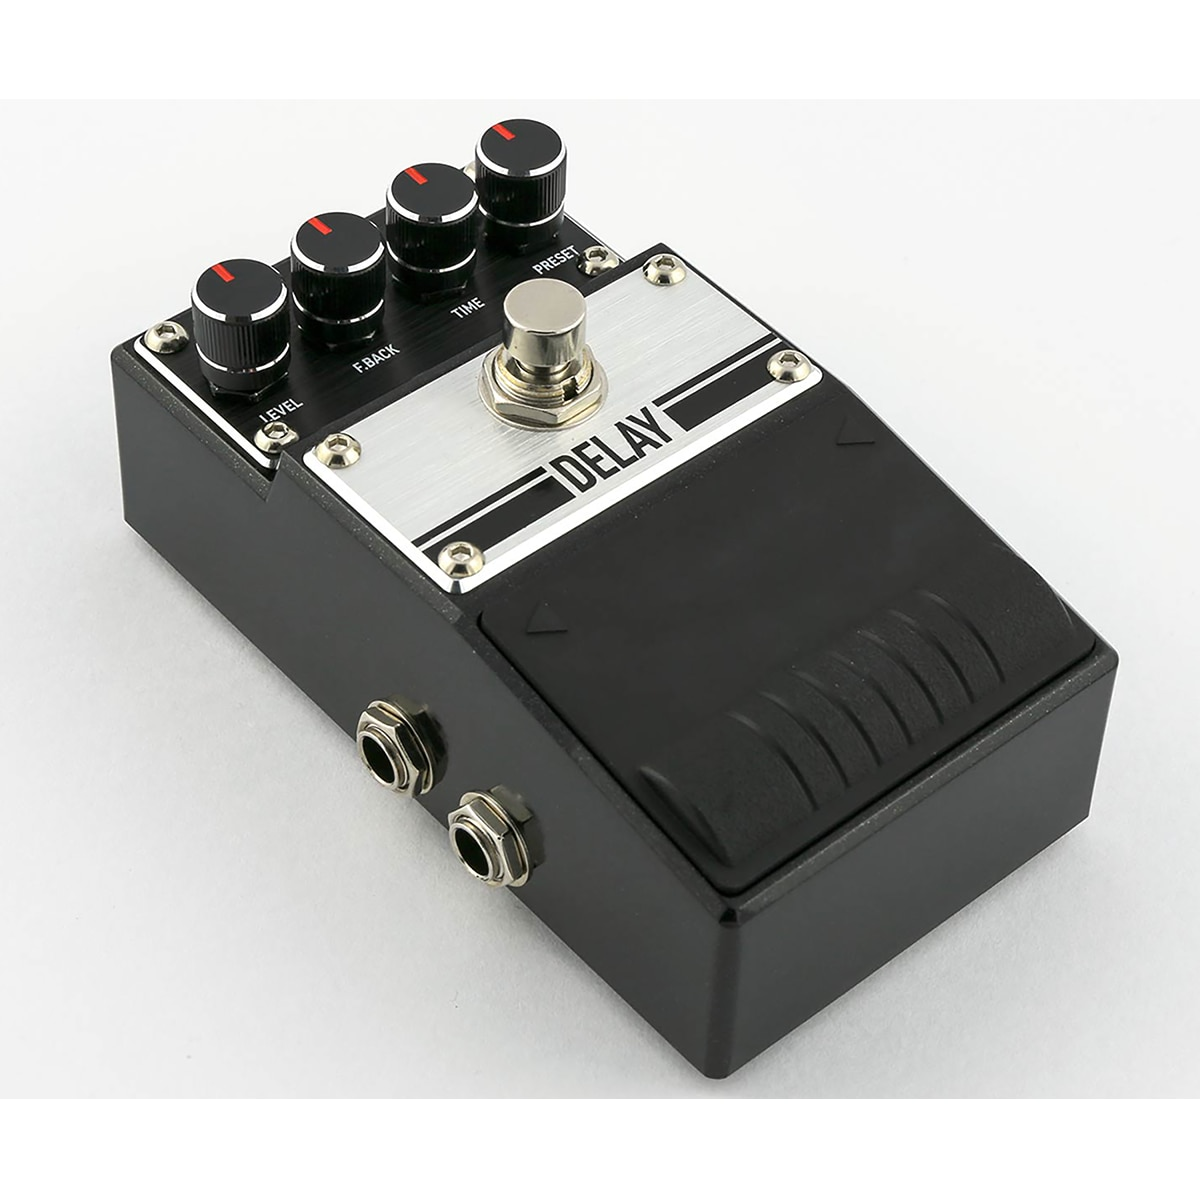 BAC Guitar Delay Audio Effector Pedals Up to 1000 ms Stereo Support USB Power Supply